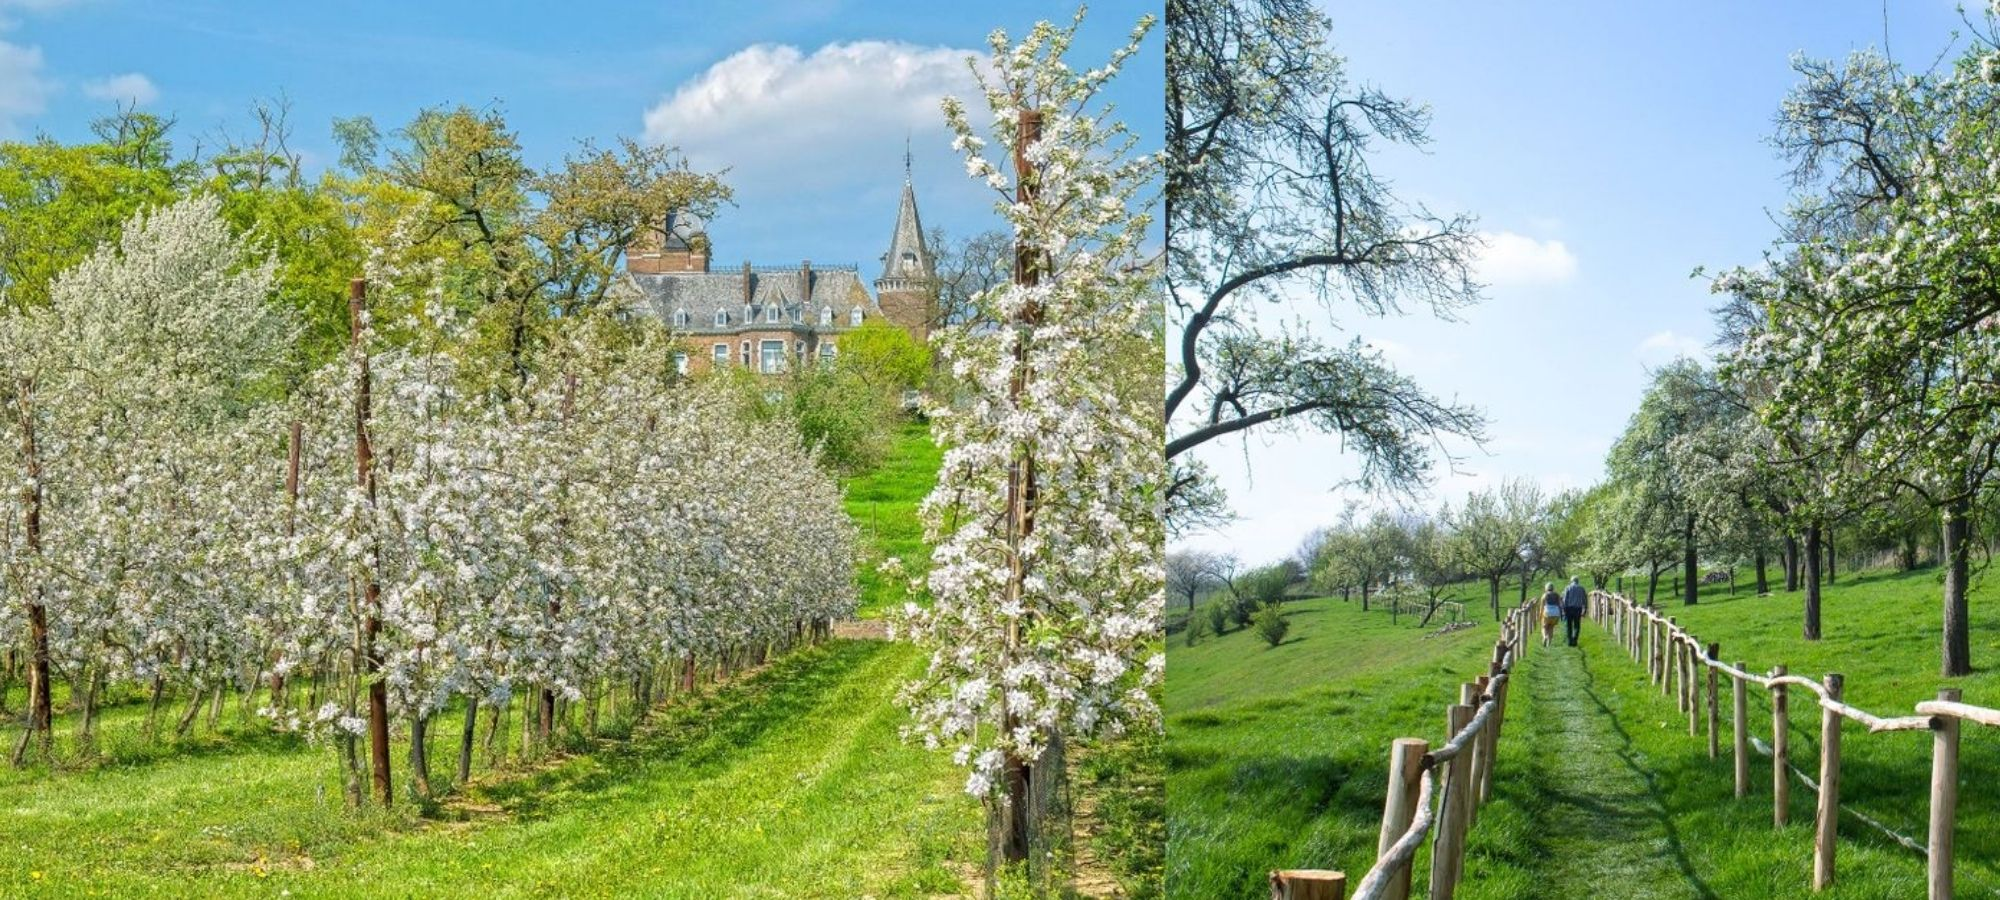 Rows of blossoming orchards in Borgloon, Limburg